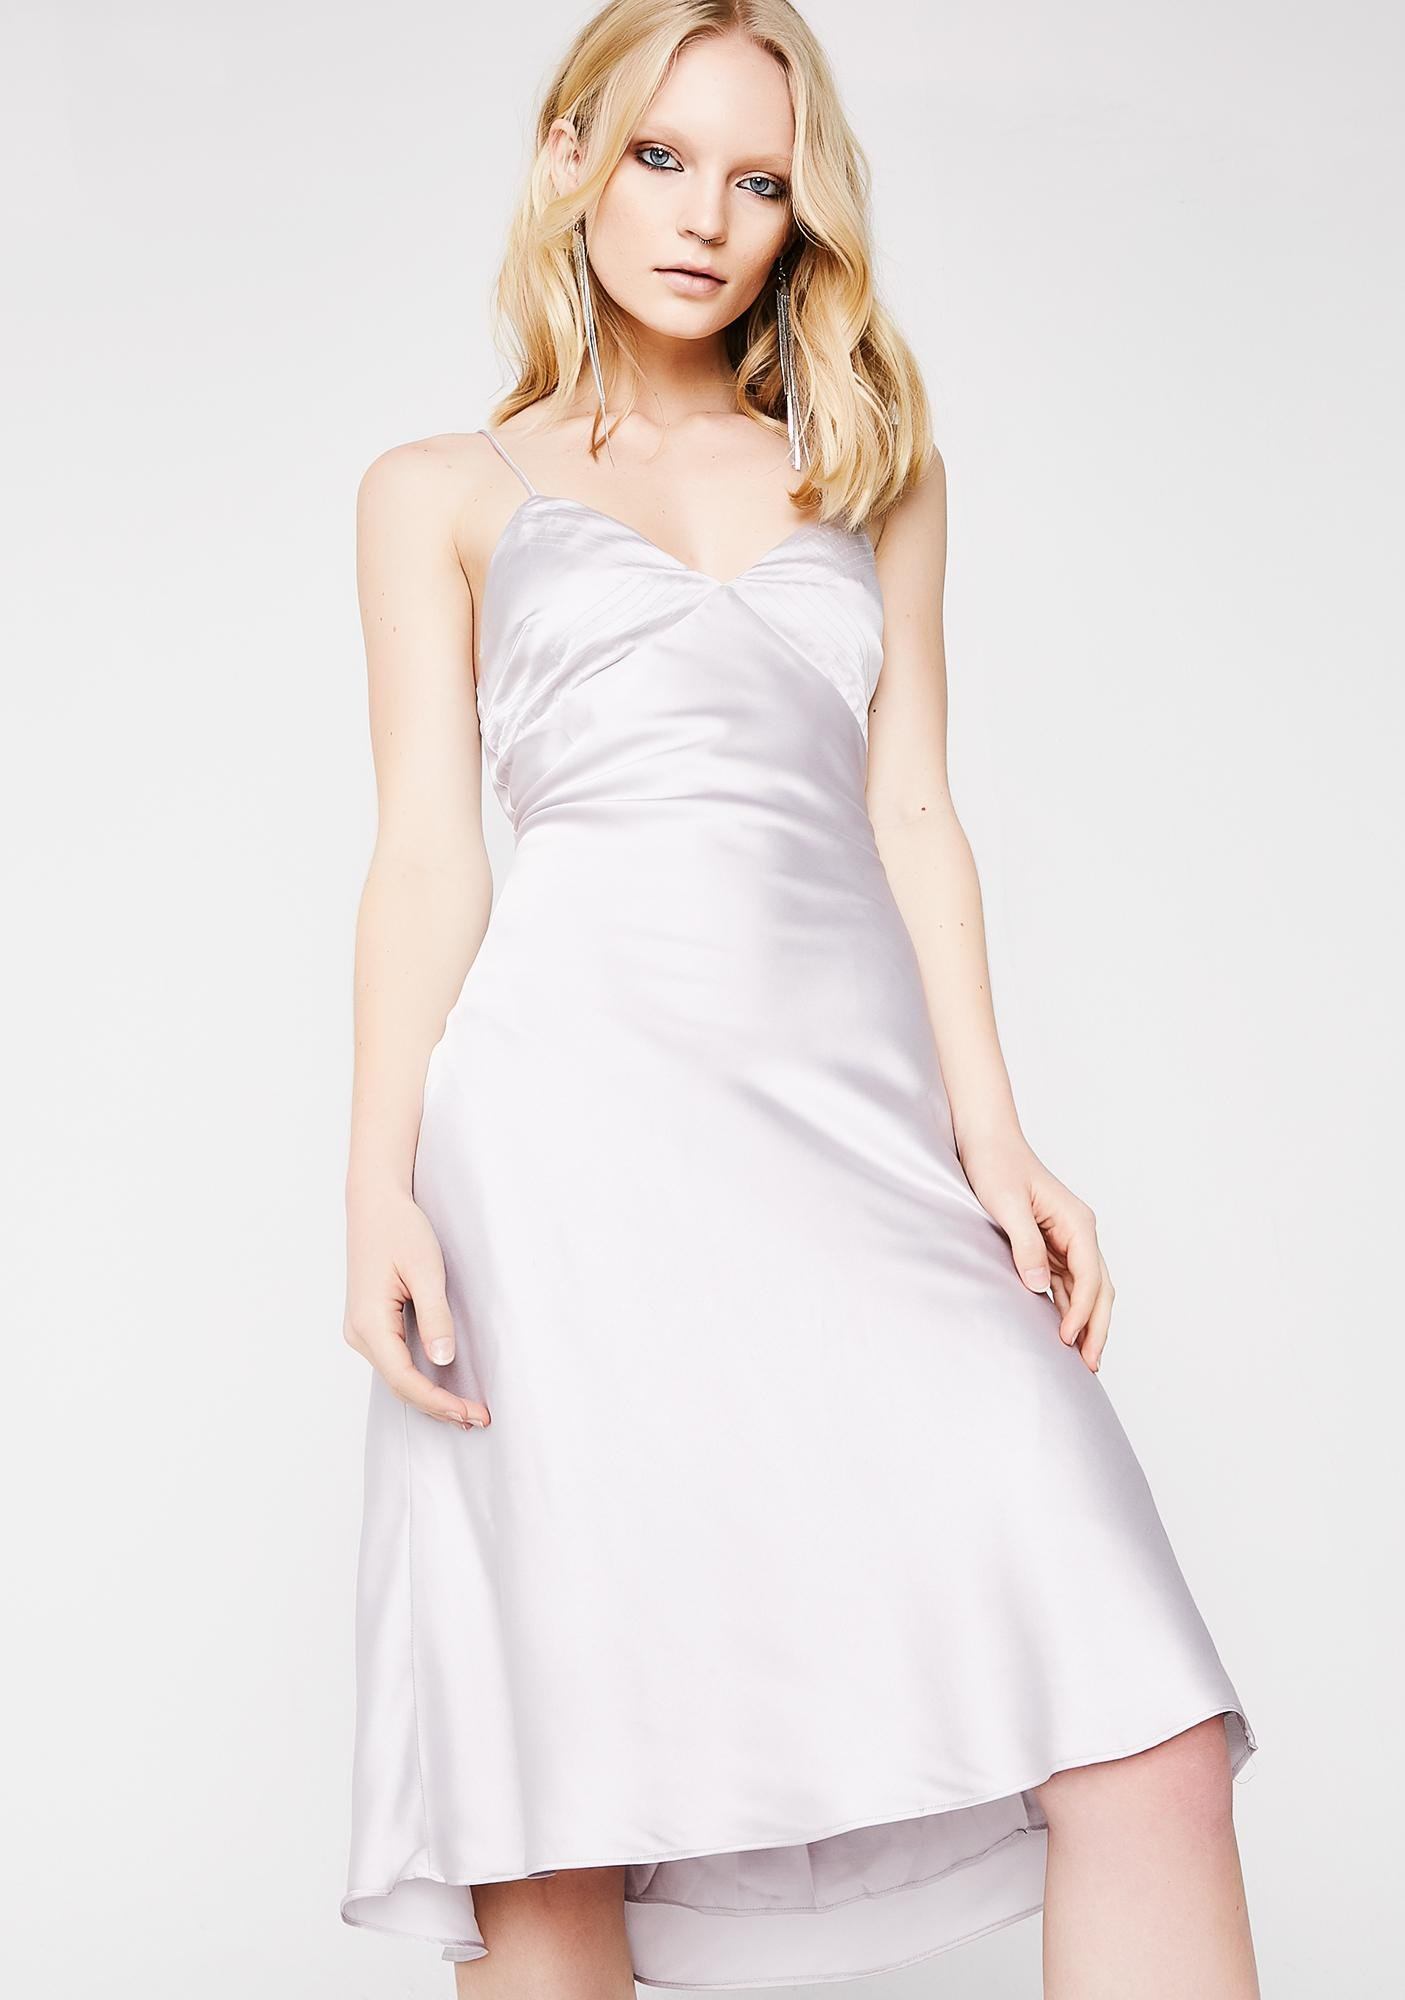 White Satin Dresses for Women